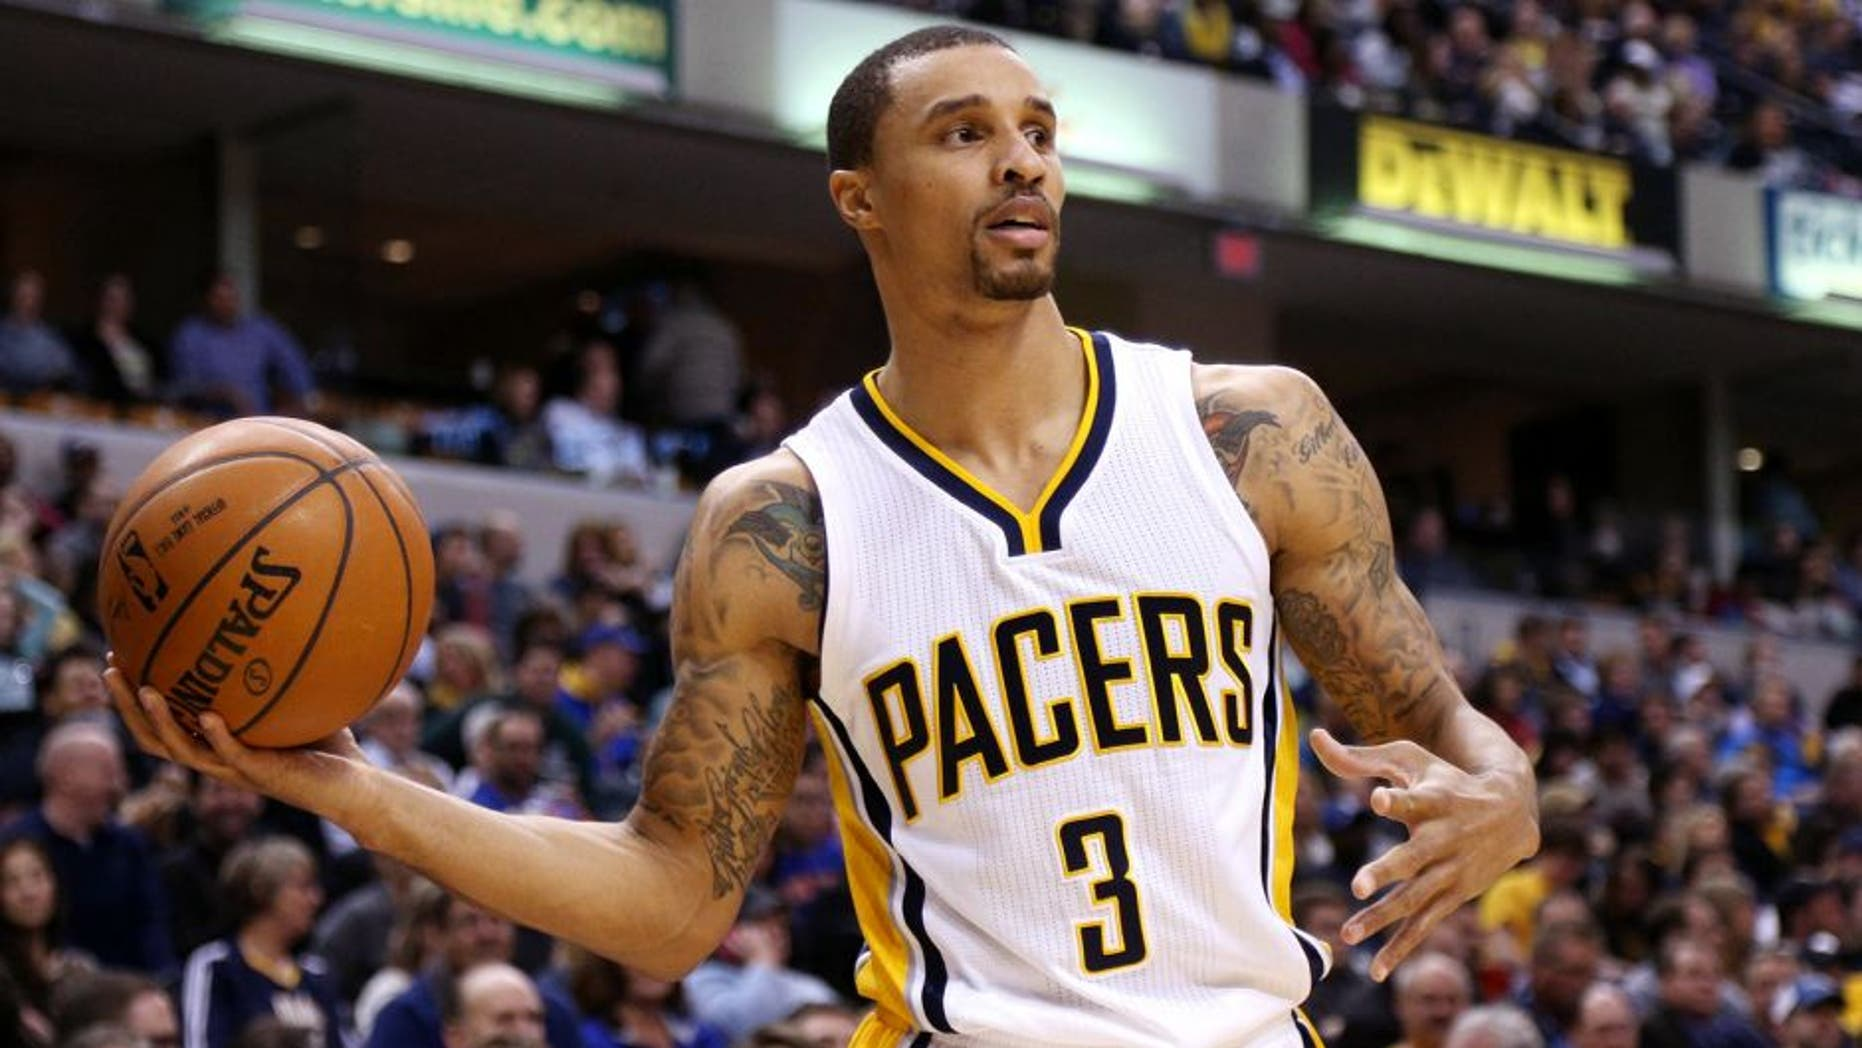 Jan 29, 2015; Indianapolis, IN, USA; Indiana Pacers guard George Hill (3) looks to make a pass against the New York Knicks at Bankers Life Fieldhouse. Indiana defeats New York 103-82. Mandatory Credit: Brian Spurlock-USA TODAY Sports